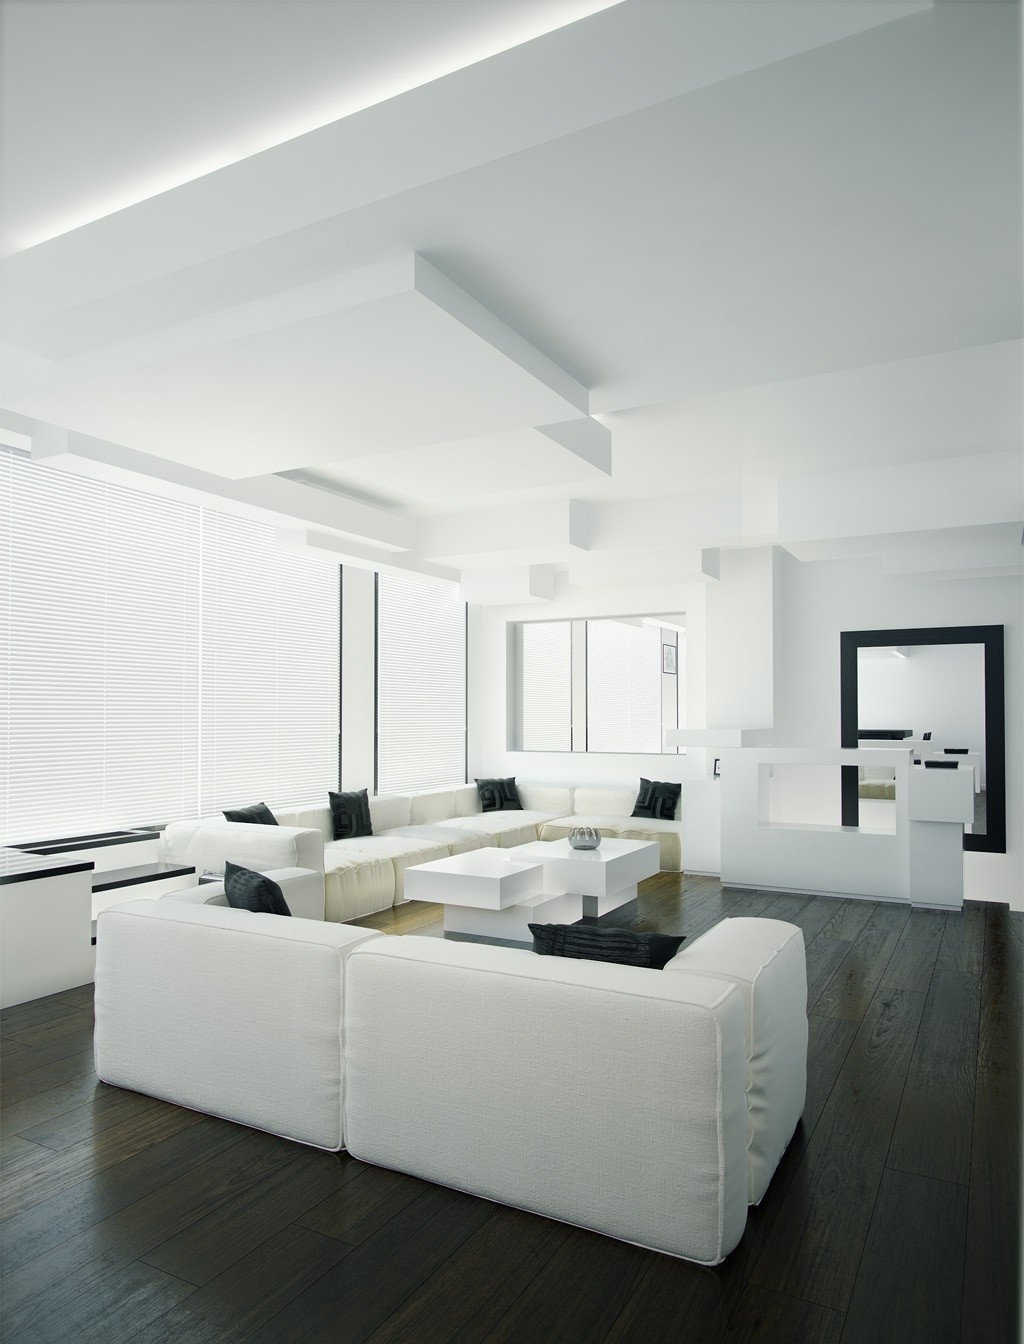 Black and White Living Room Decorating Ideas Fresh Black and White Living Room Interior Design Ideas